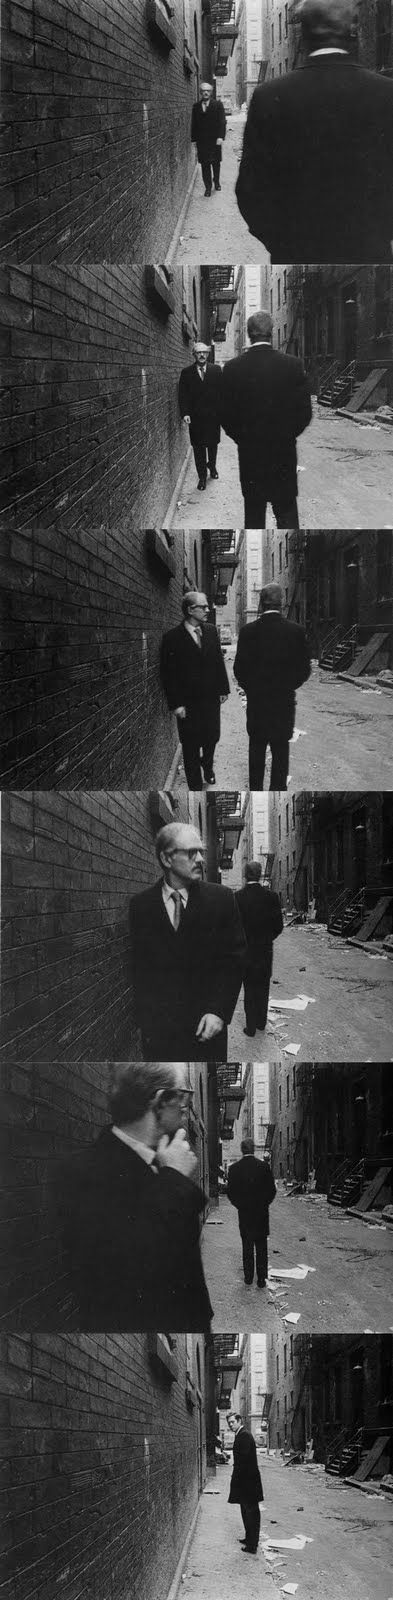 Duane Michals #sequence #photo (photograph the groom and best man exchanging the ring like a top secret message)